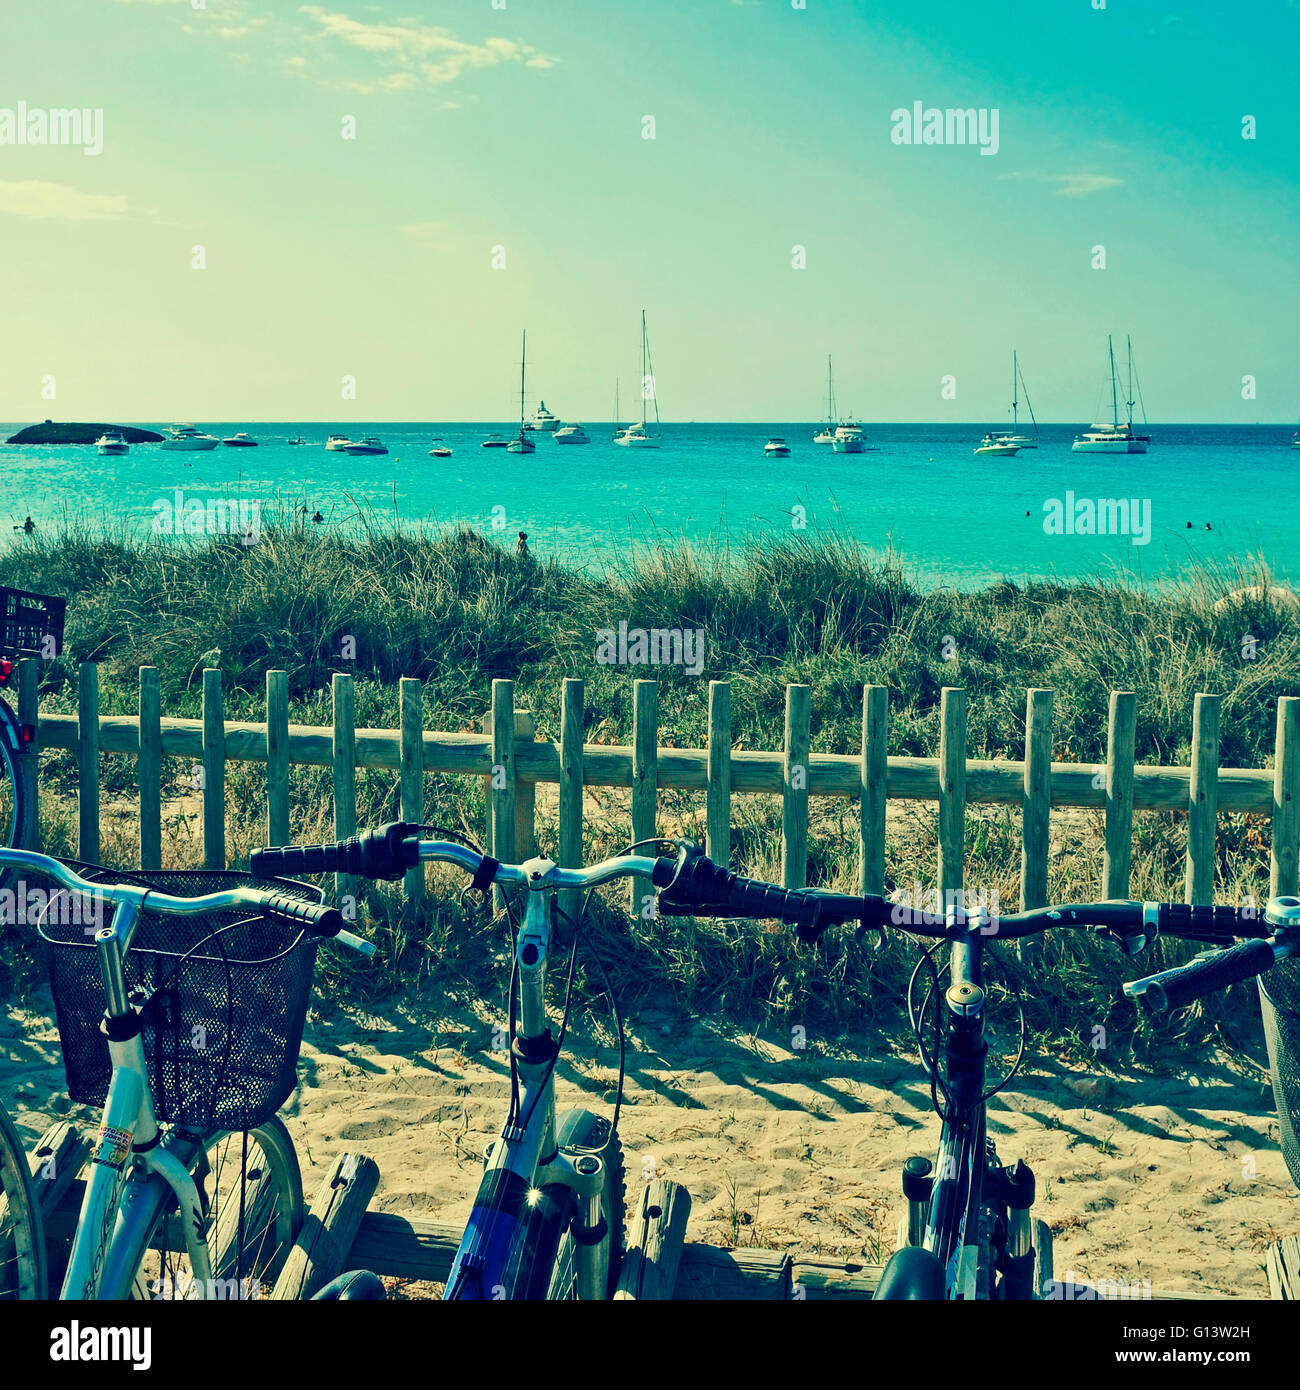 Ses Illetes Beach in Formentera, Balearic Islands, Spain, with a retro effect - Stock Image